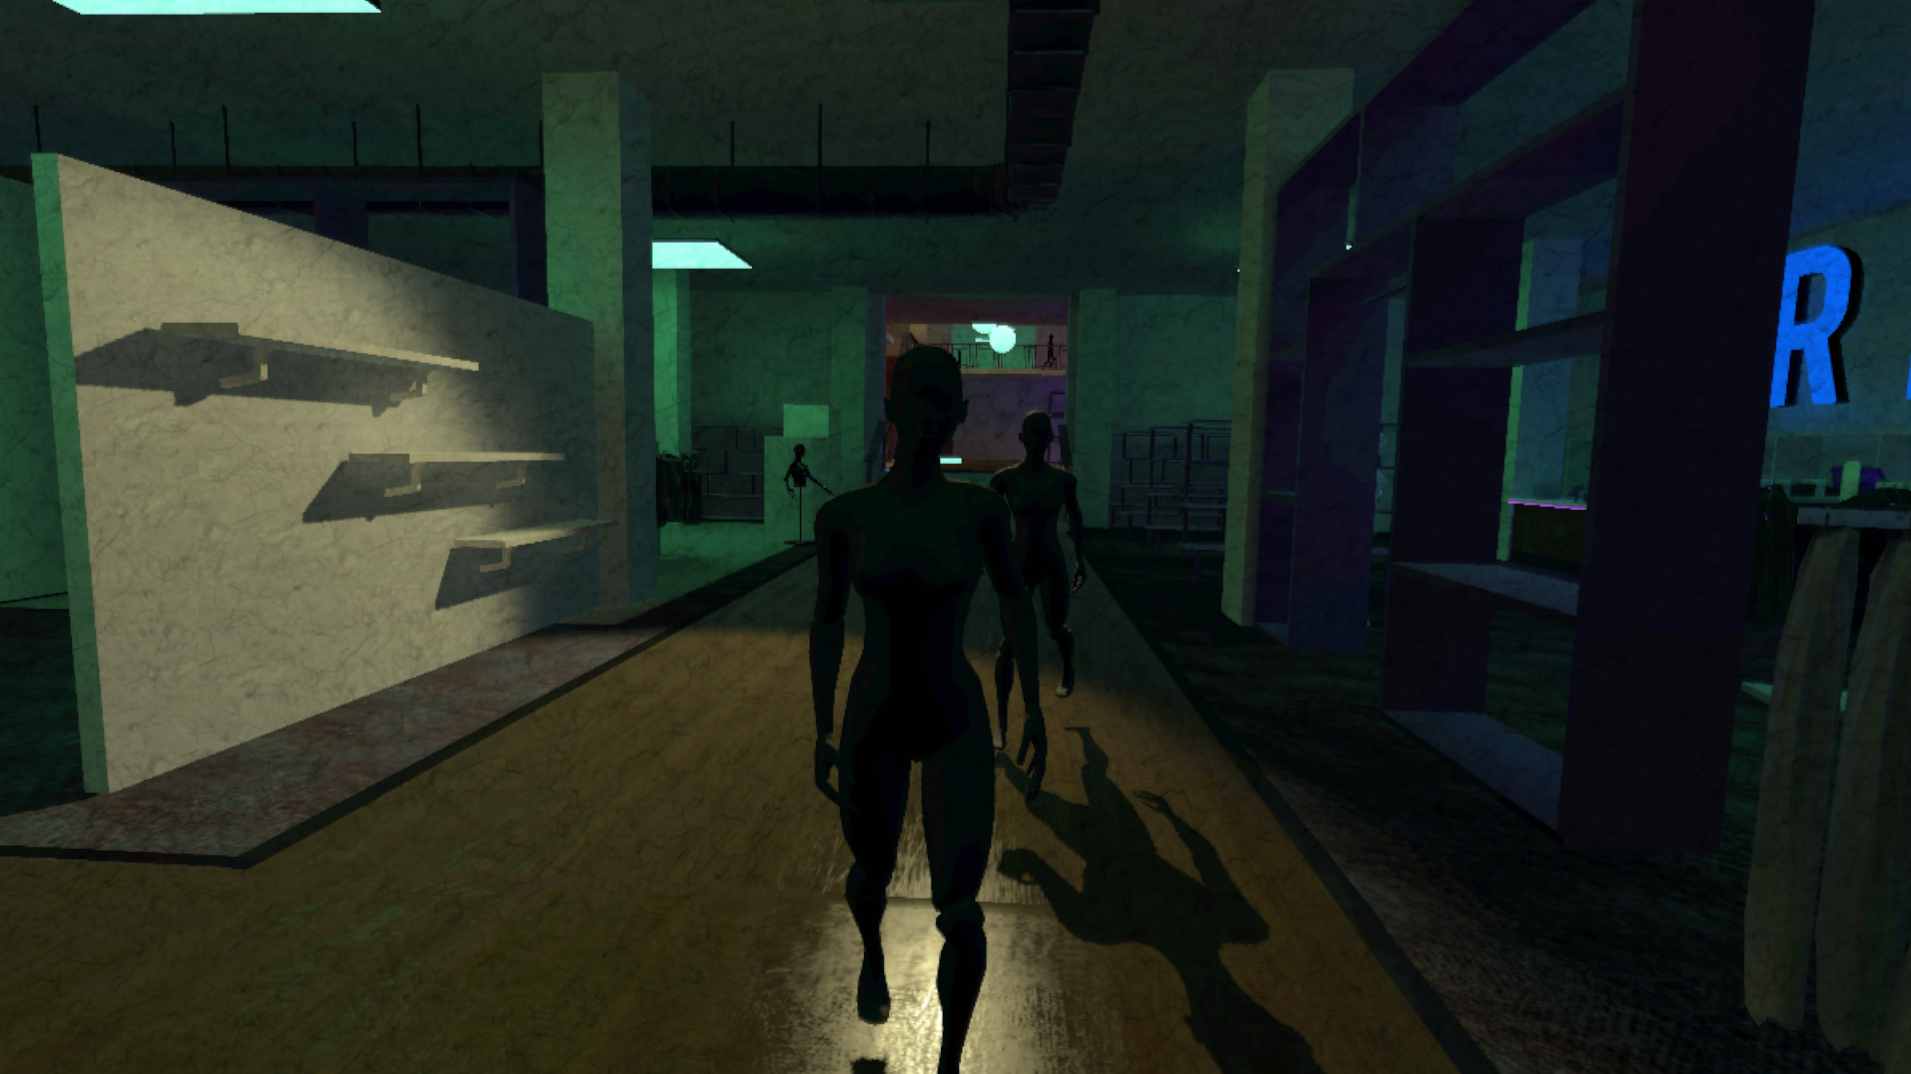 Mannequins Slowly Stalk You In Creepy New Horror Game